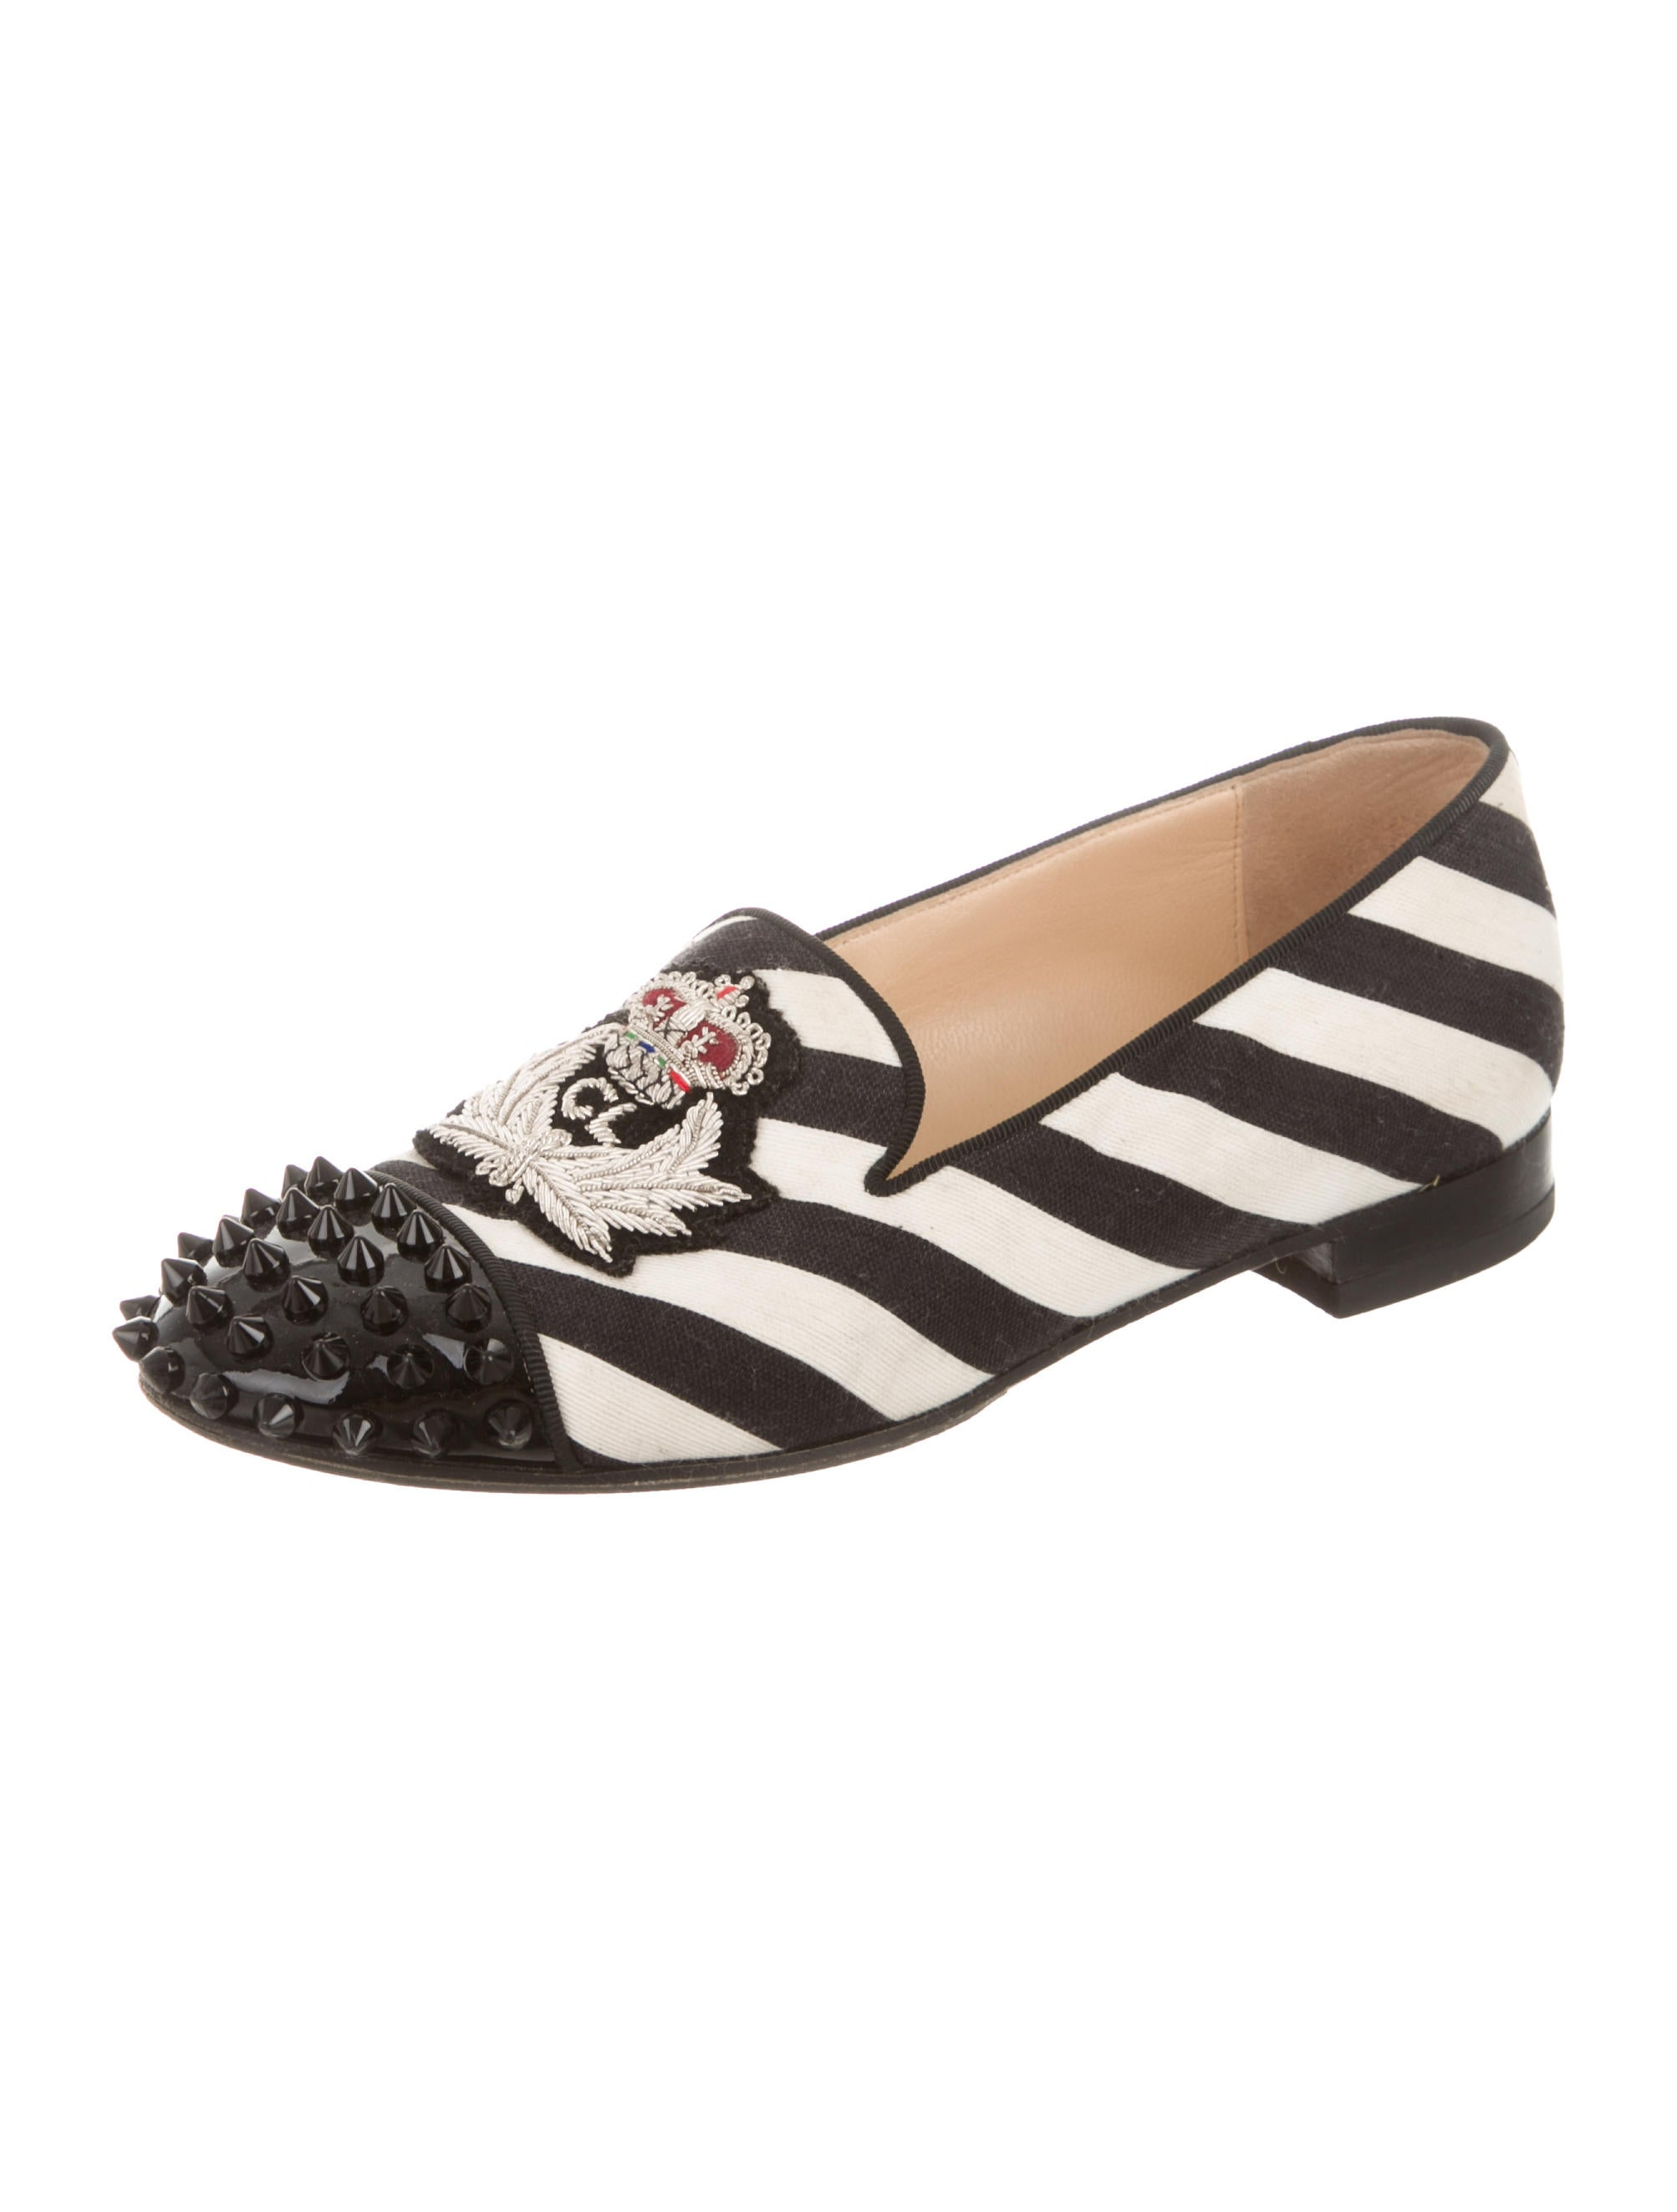 Find striped flats at ShopStyle. Shop the latest collection of striped flats from the most popular stores - all in one place.